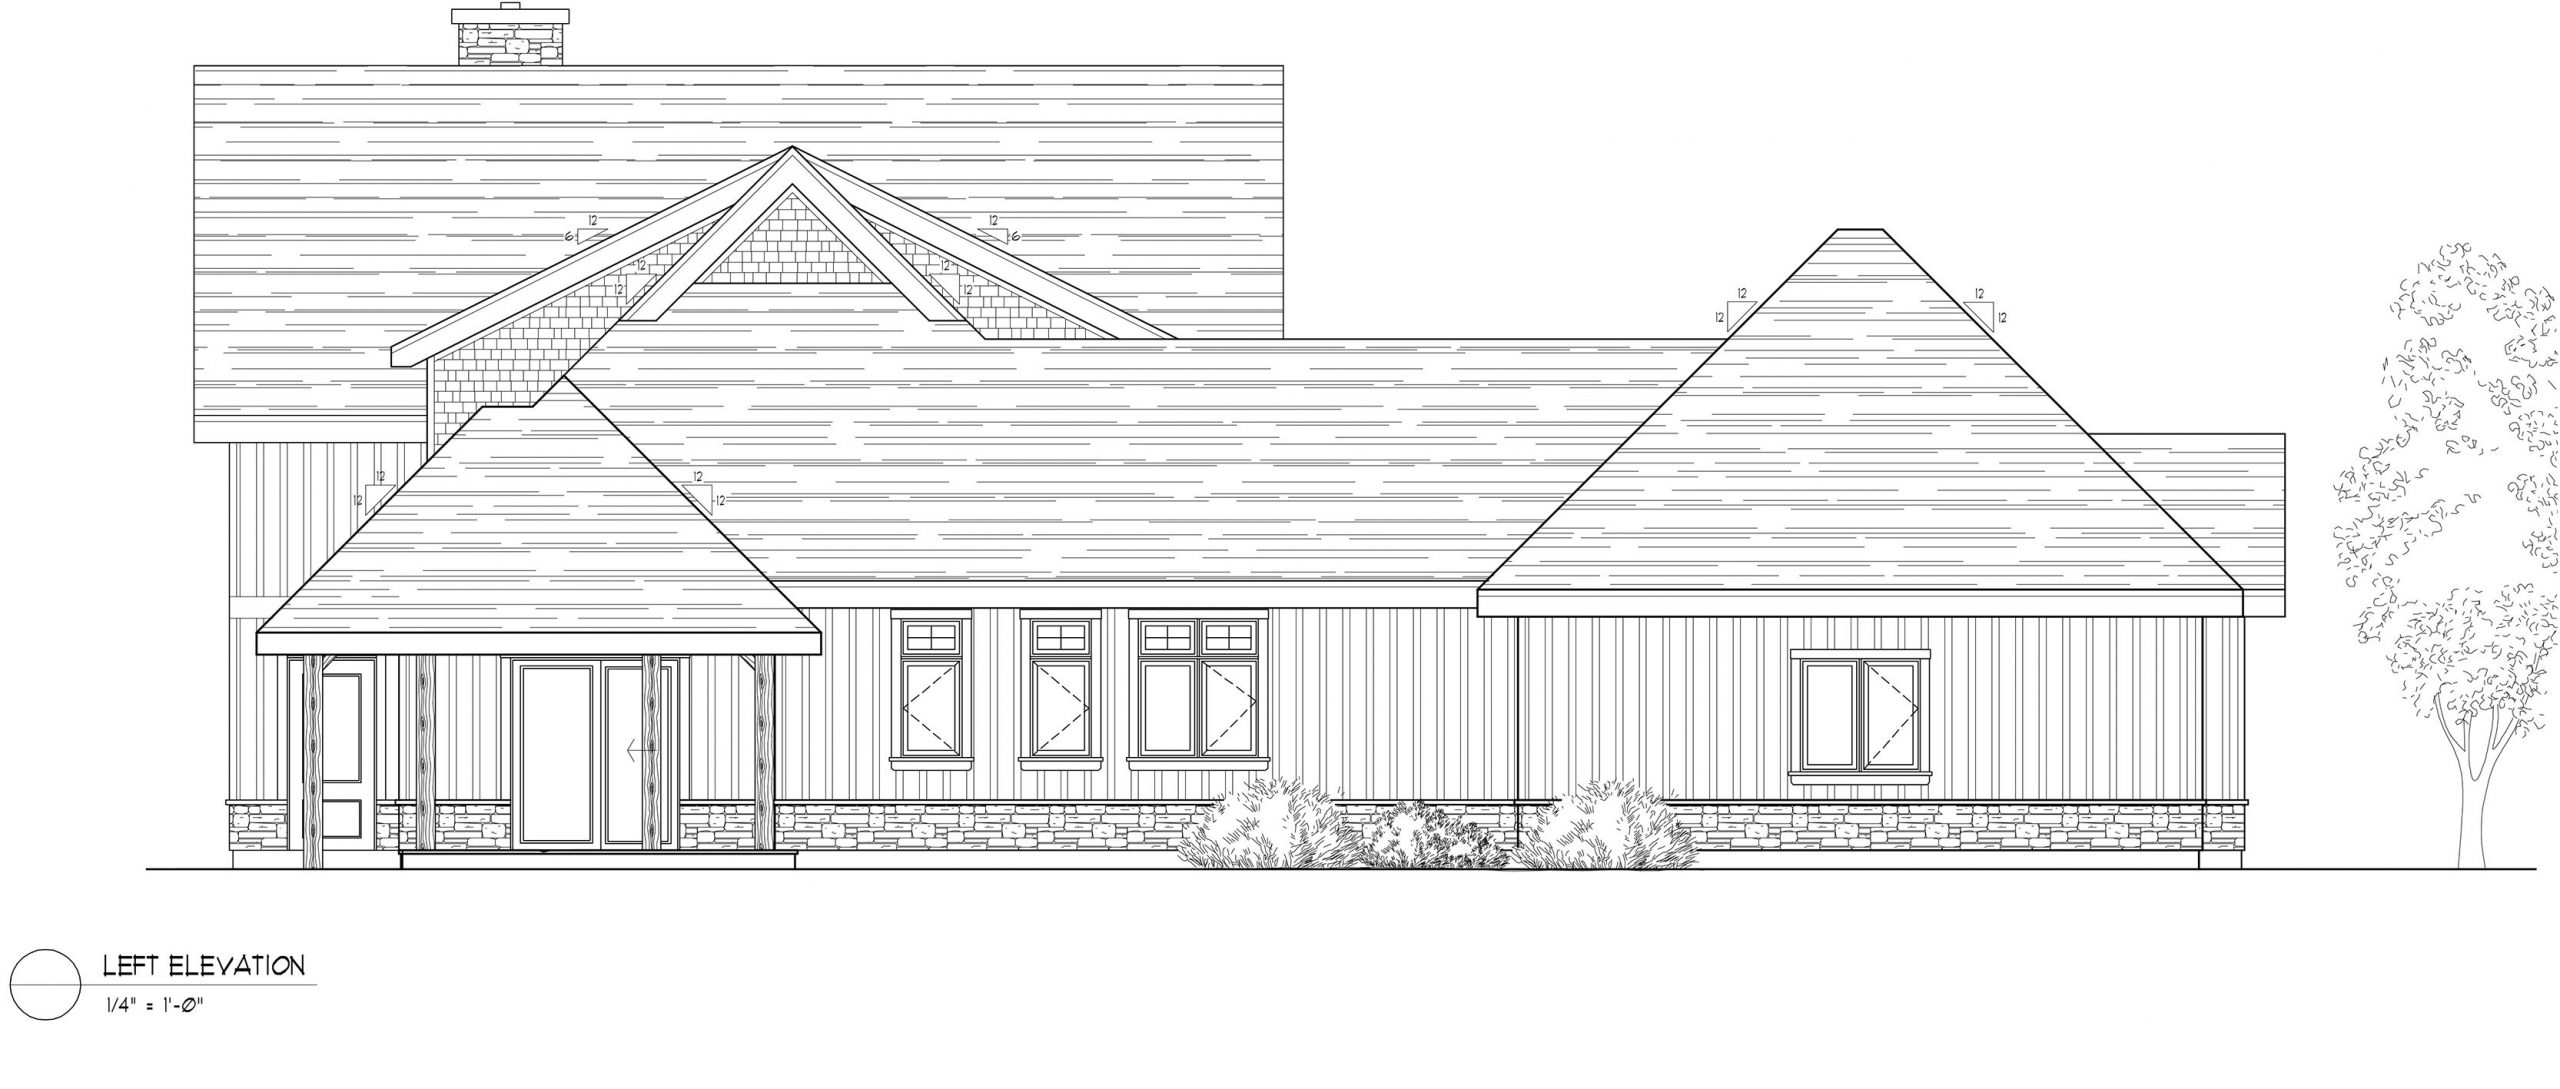 Normerica Timber Frames, House Plan, The Dufferin 2822, Left Elevation